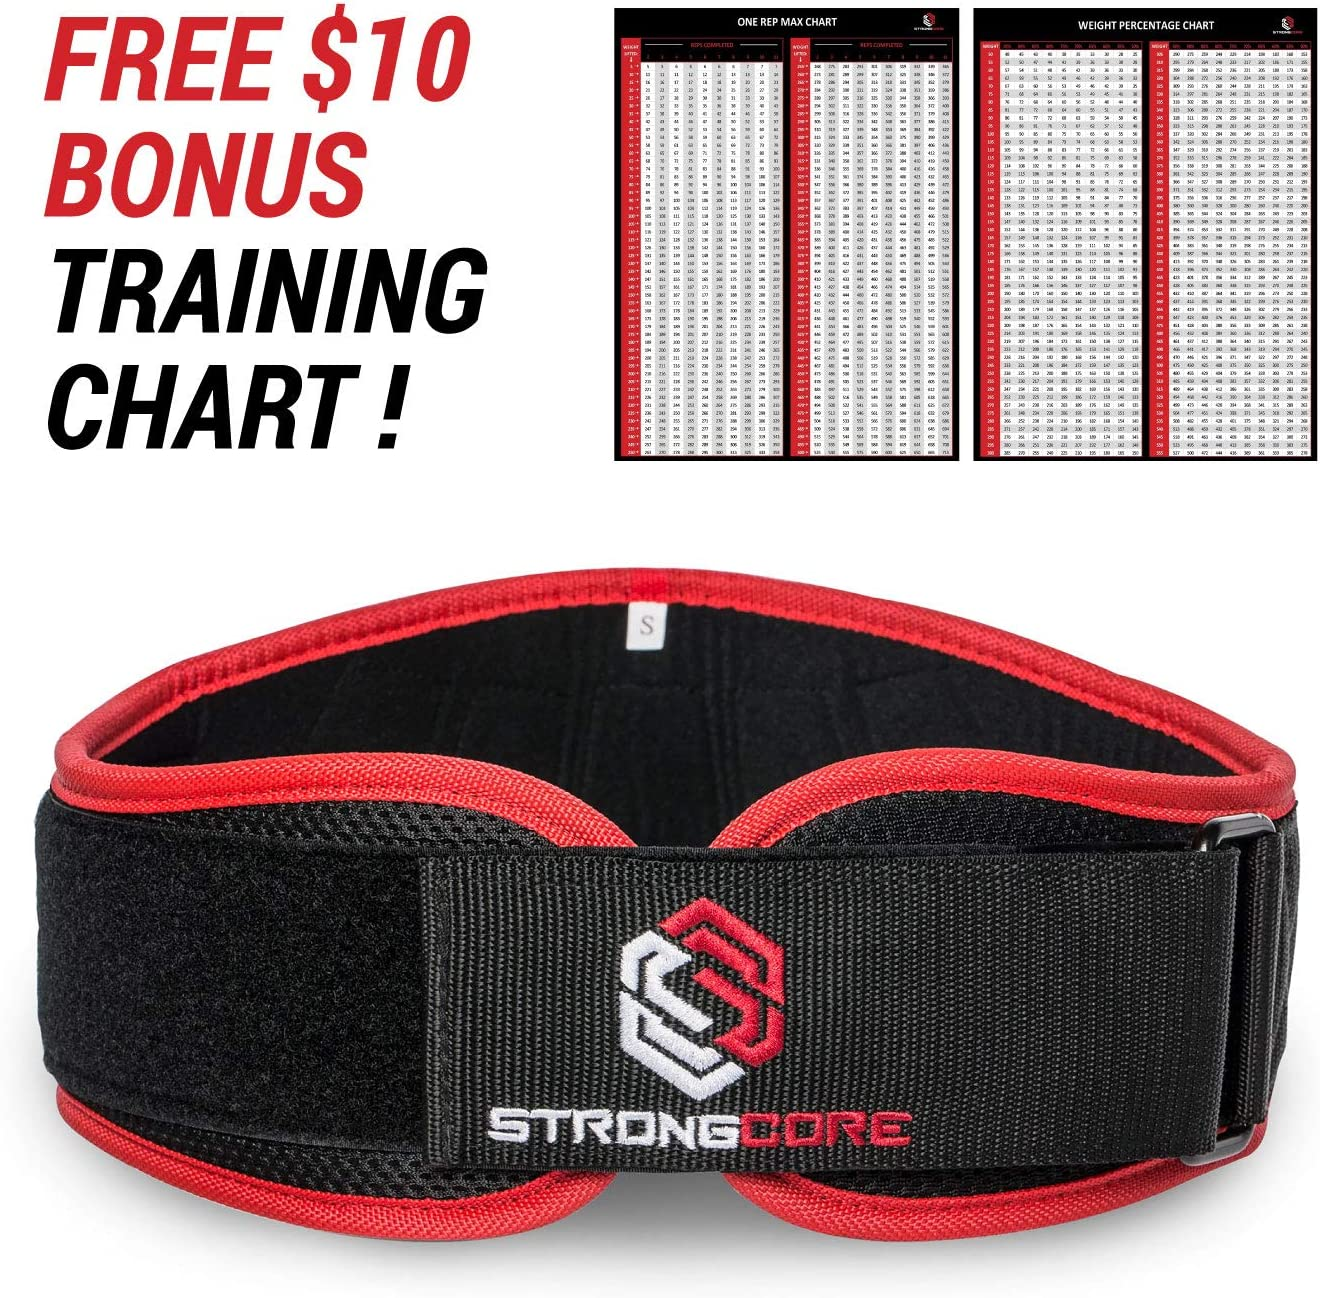 Weightlifting Belt – with Free Bonus Training Chart – Premium Quality Weight Lifting Belt for Powerlifting, Weight Lifting and Crossfit